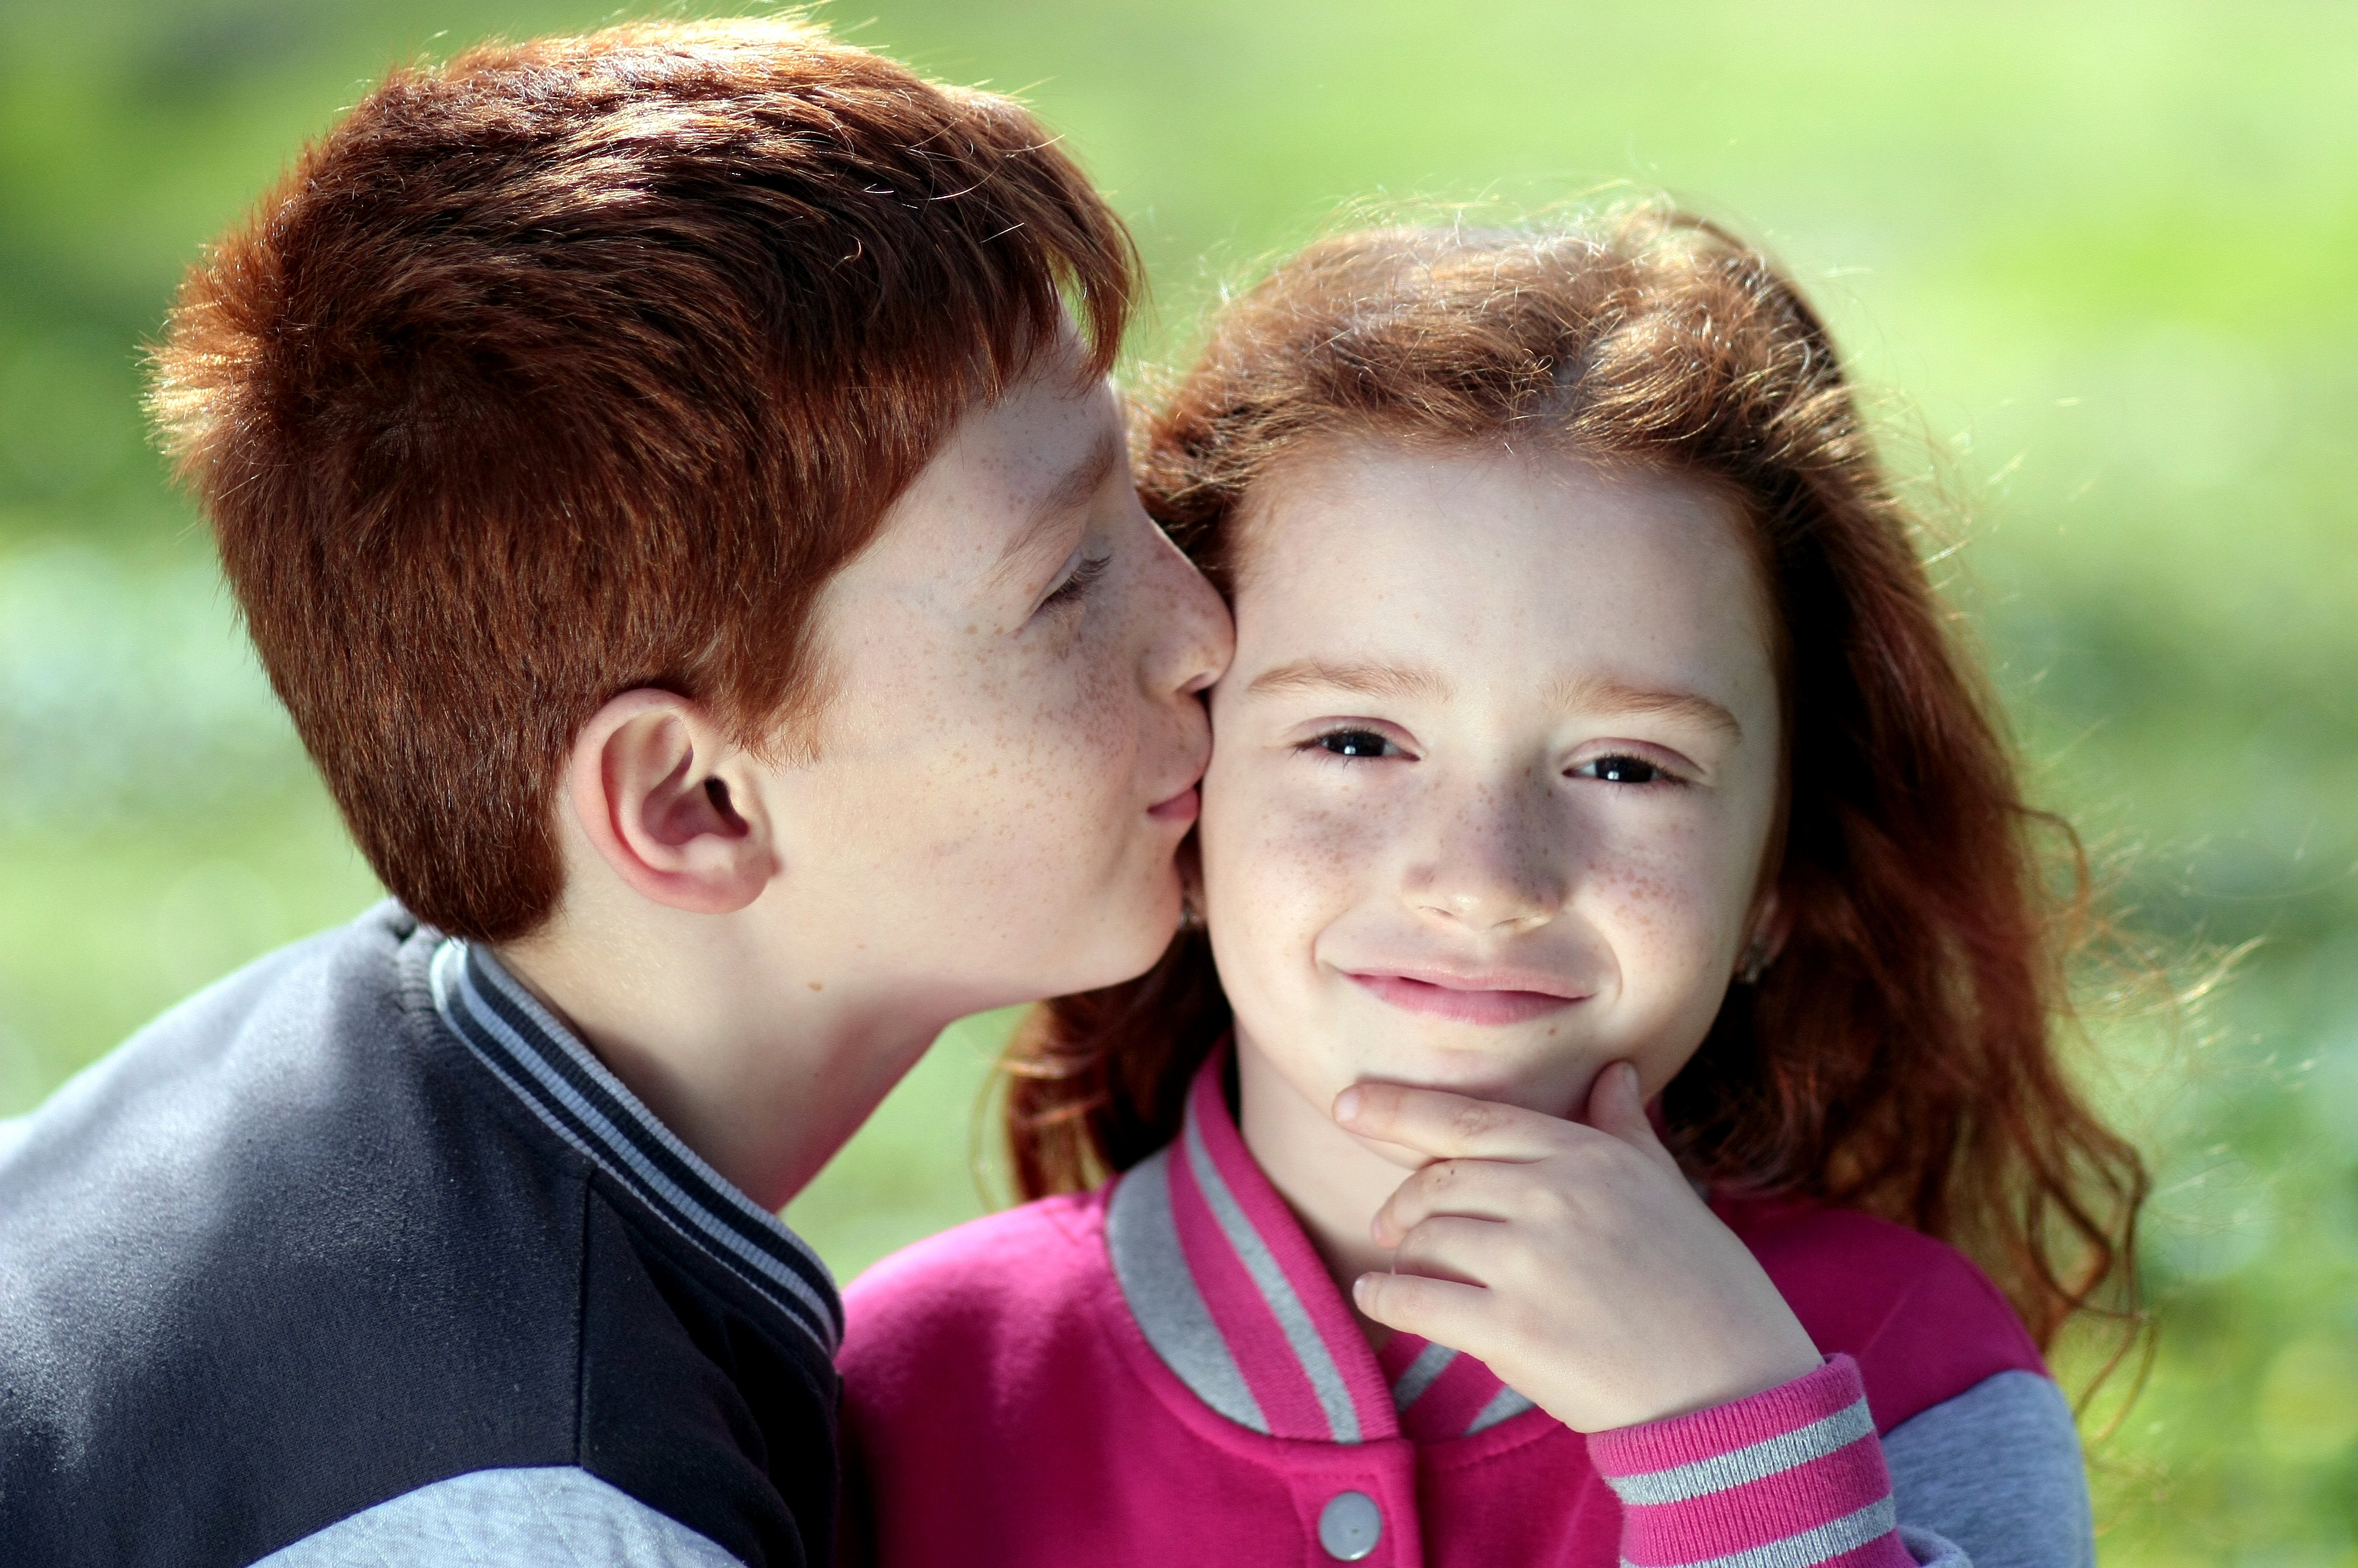 Canva - Young Boy Kissing Girl